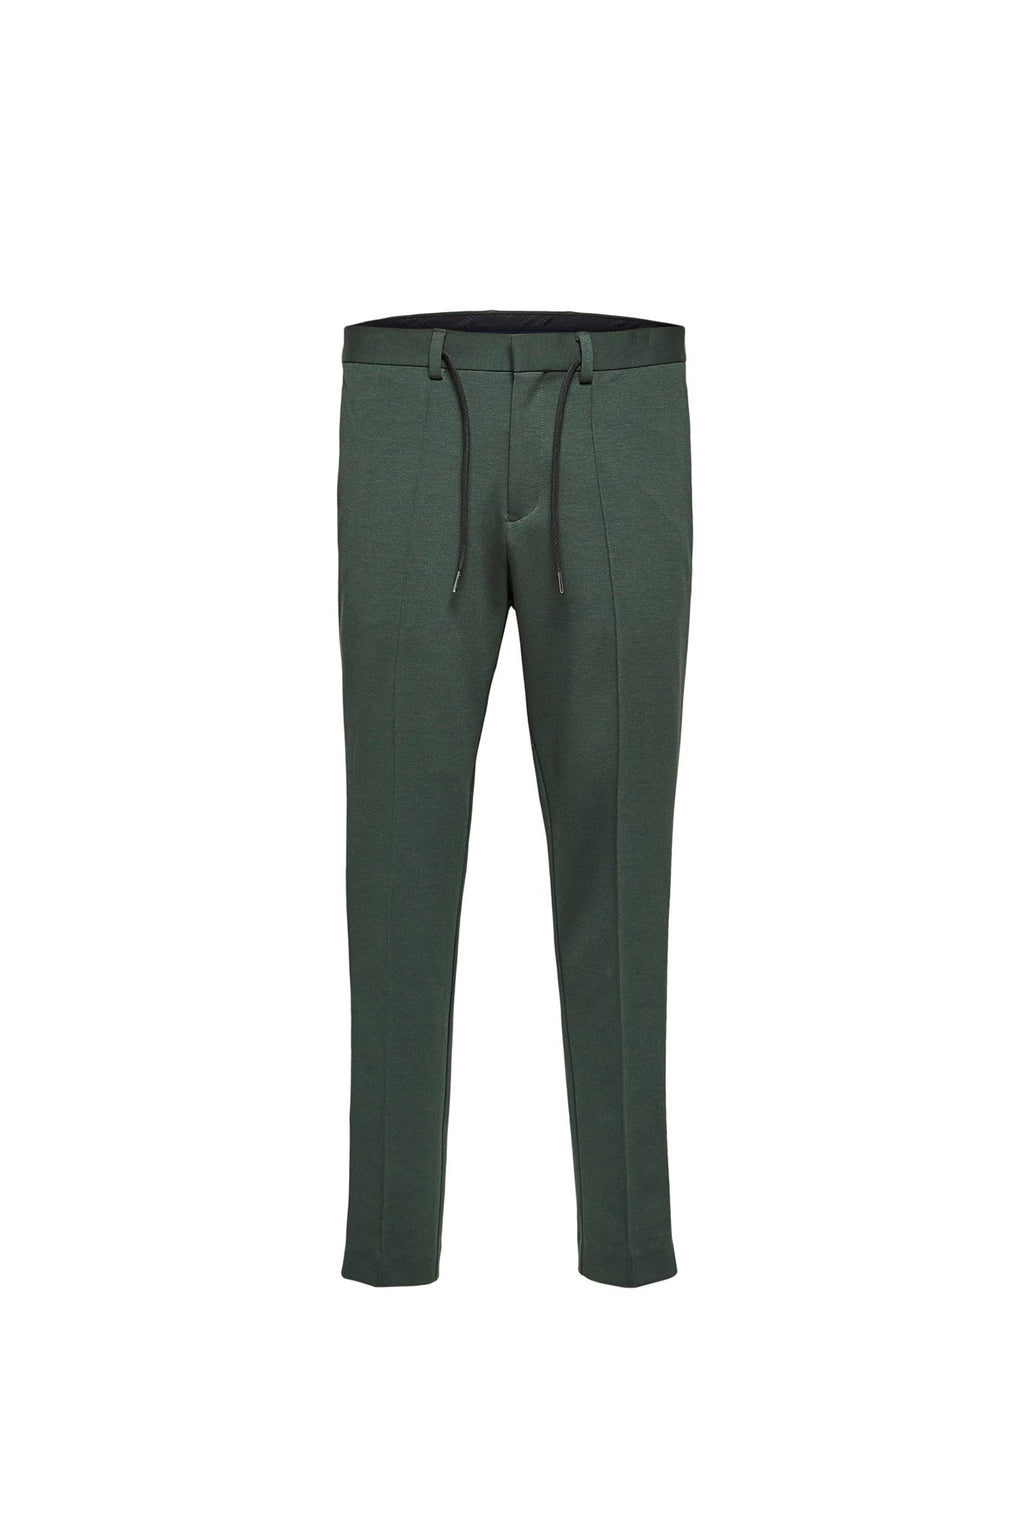 Gair Two Tone Pants - Deep Forest